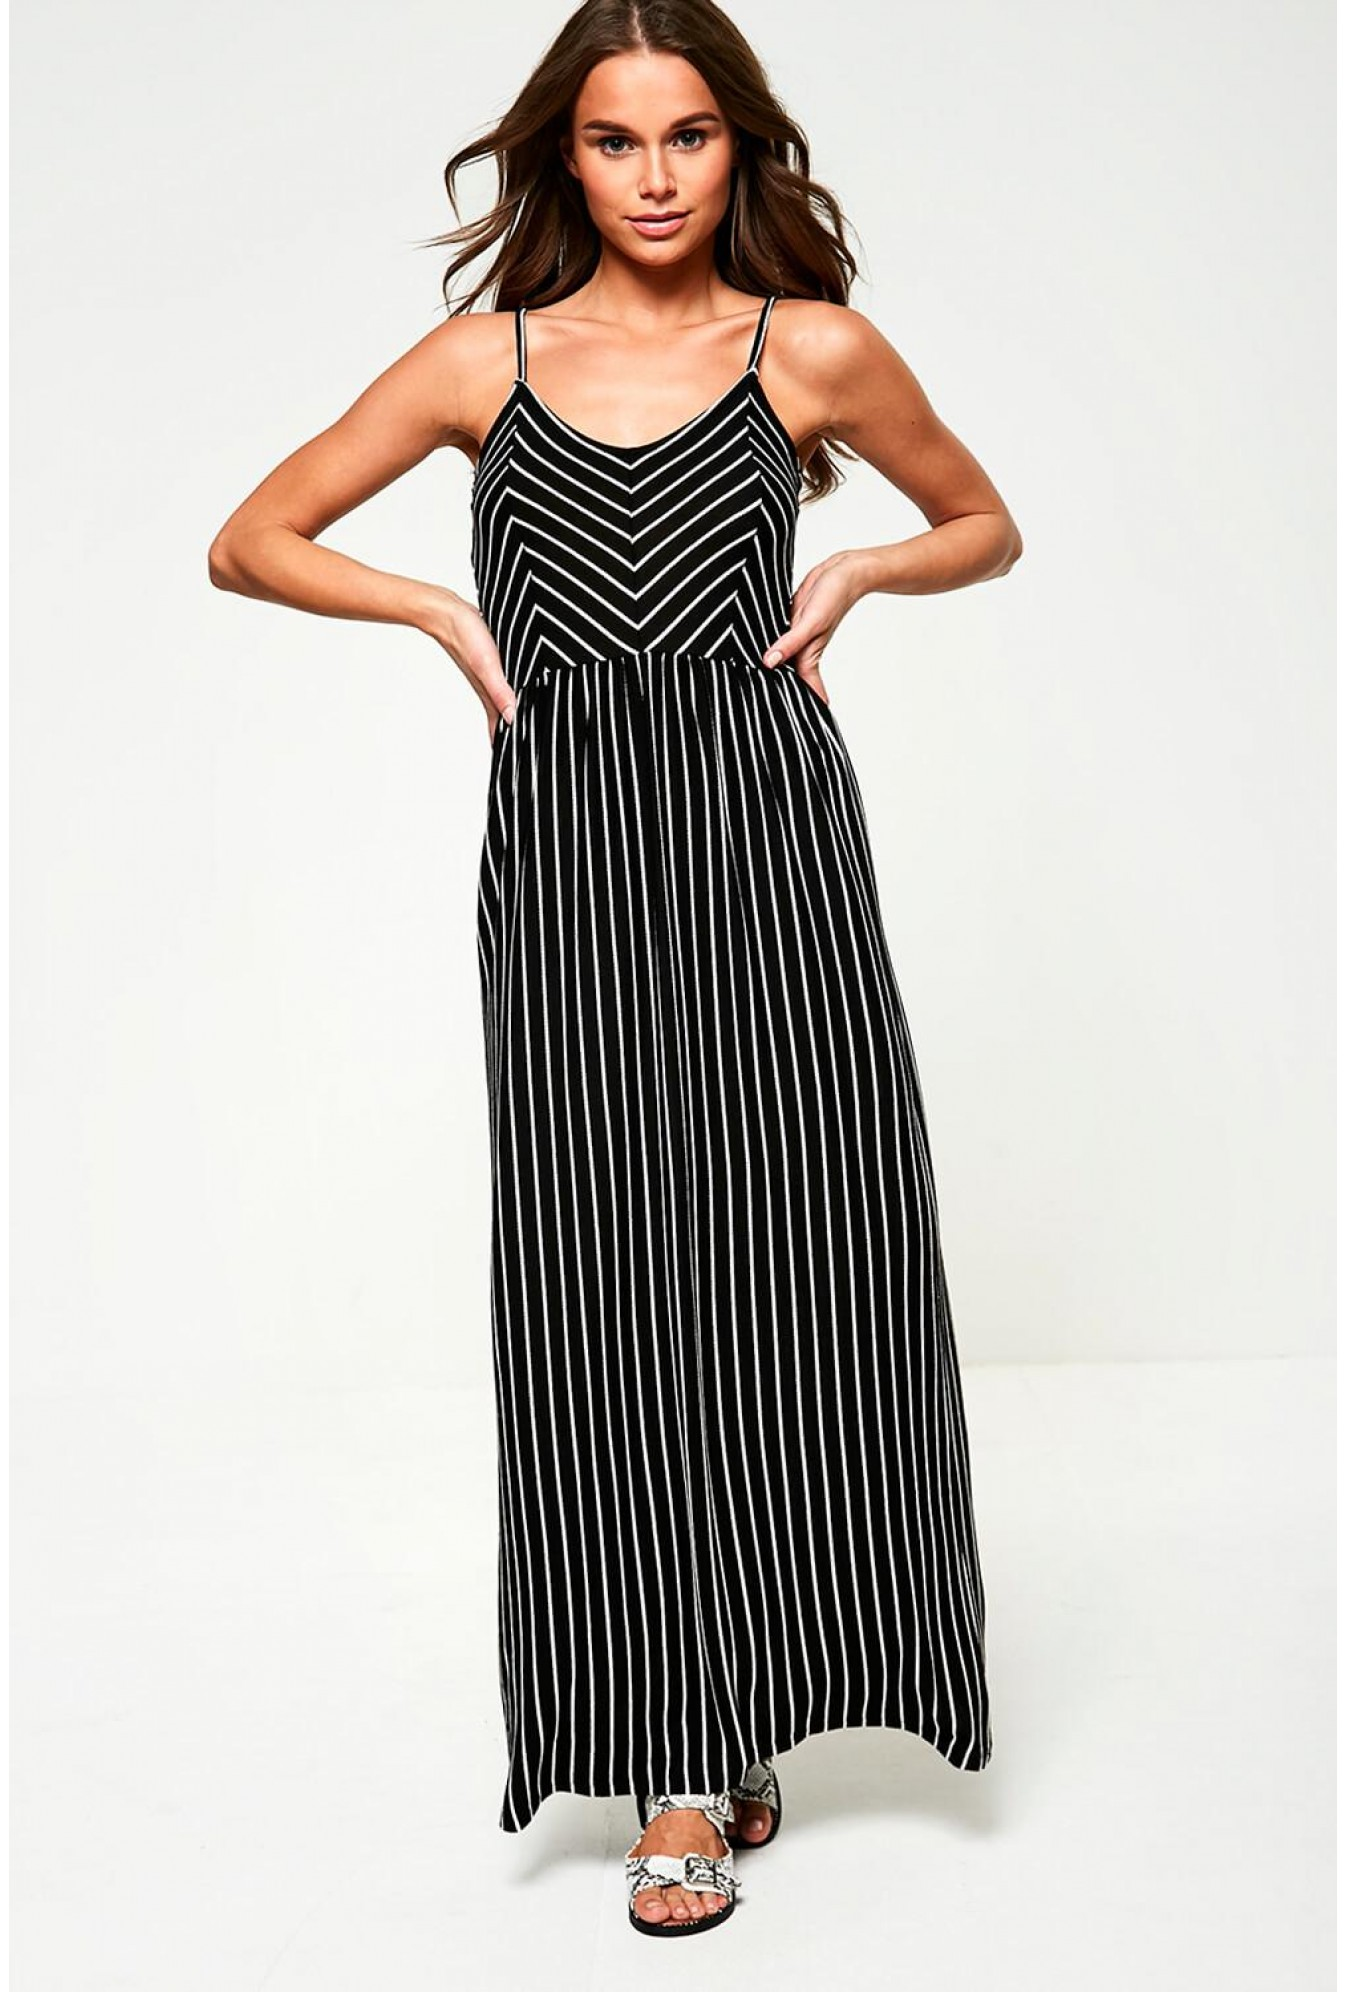 44acb0cab82 More Views. Striped Jersey Maxi Dress in Black